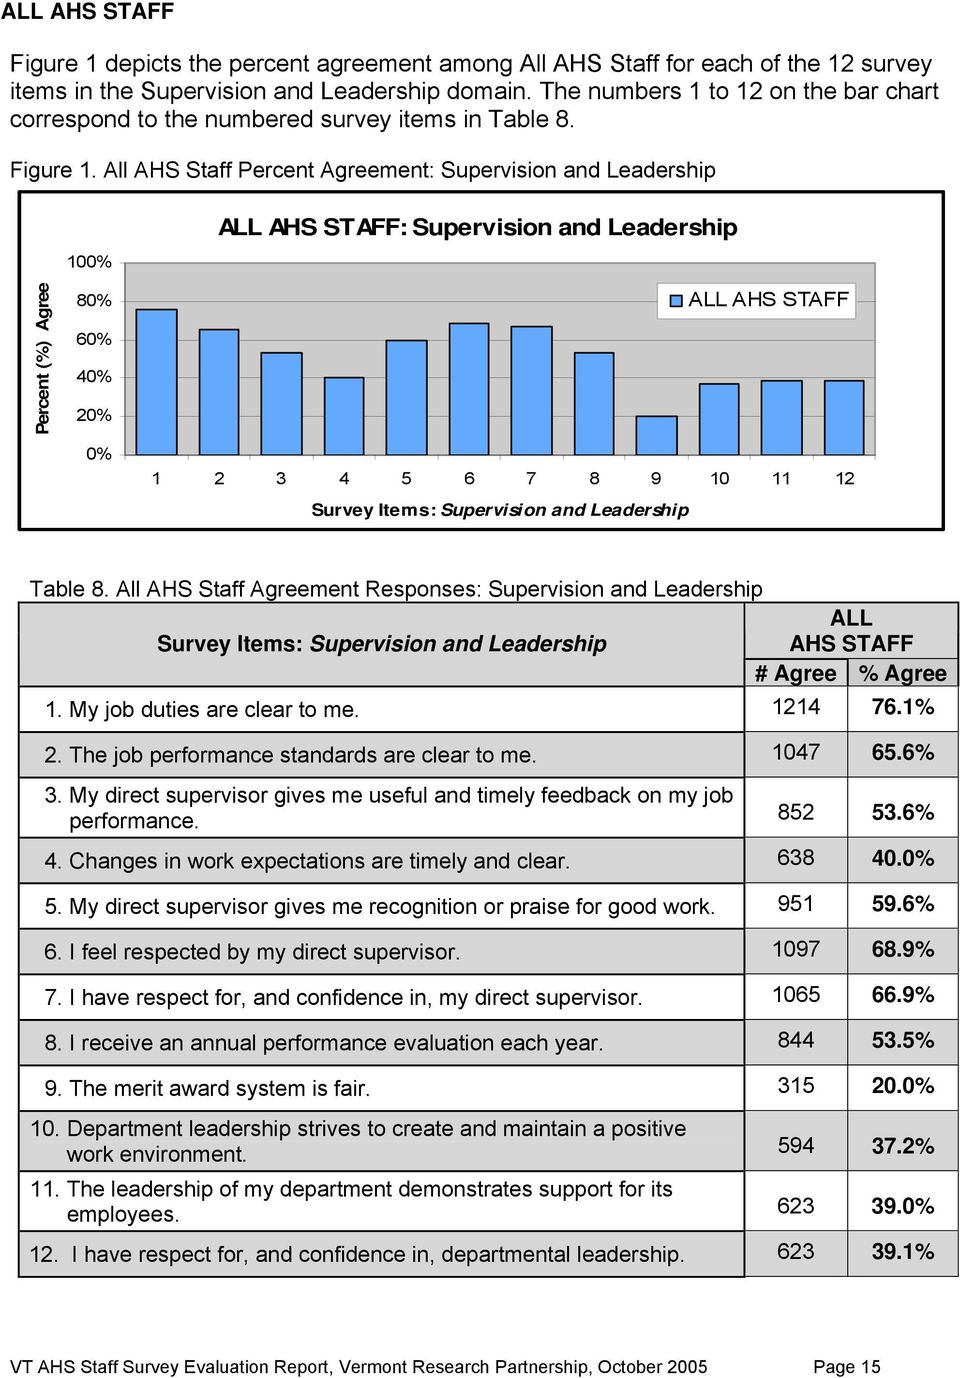 All AHS Staff Percent ment: Supervision and Leadership Percent (%) 100% 80% 60% 40% 20% 0% ALL AHS STAFF: Supervision and Leadership ALL AHS STAFF 1 2 3 4 5 6 7 8 9 10 11 12 Survey Items: Supervision